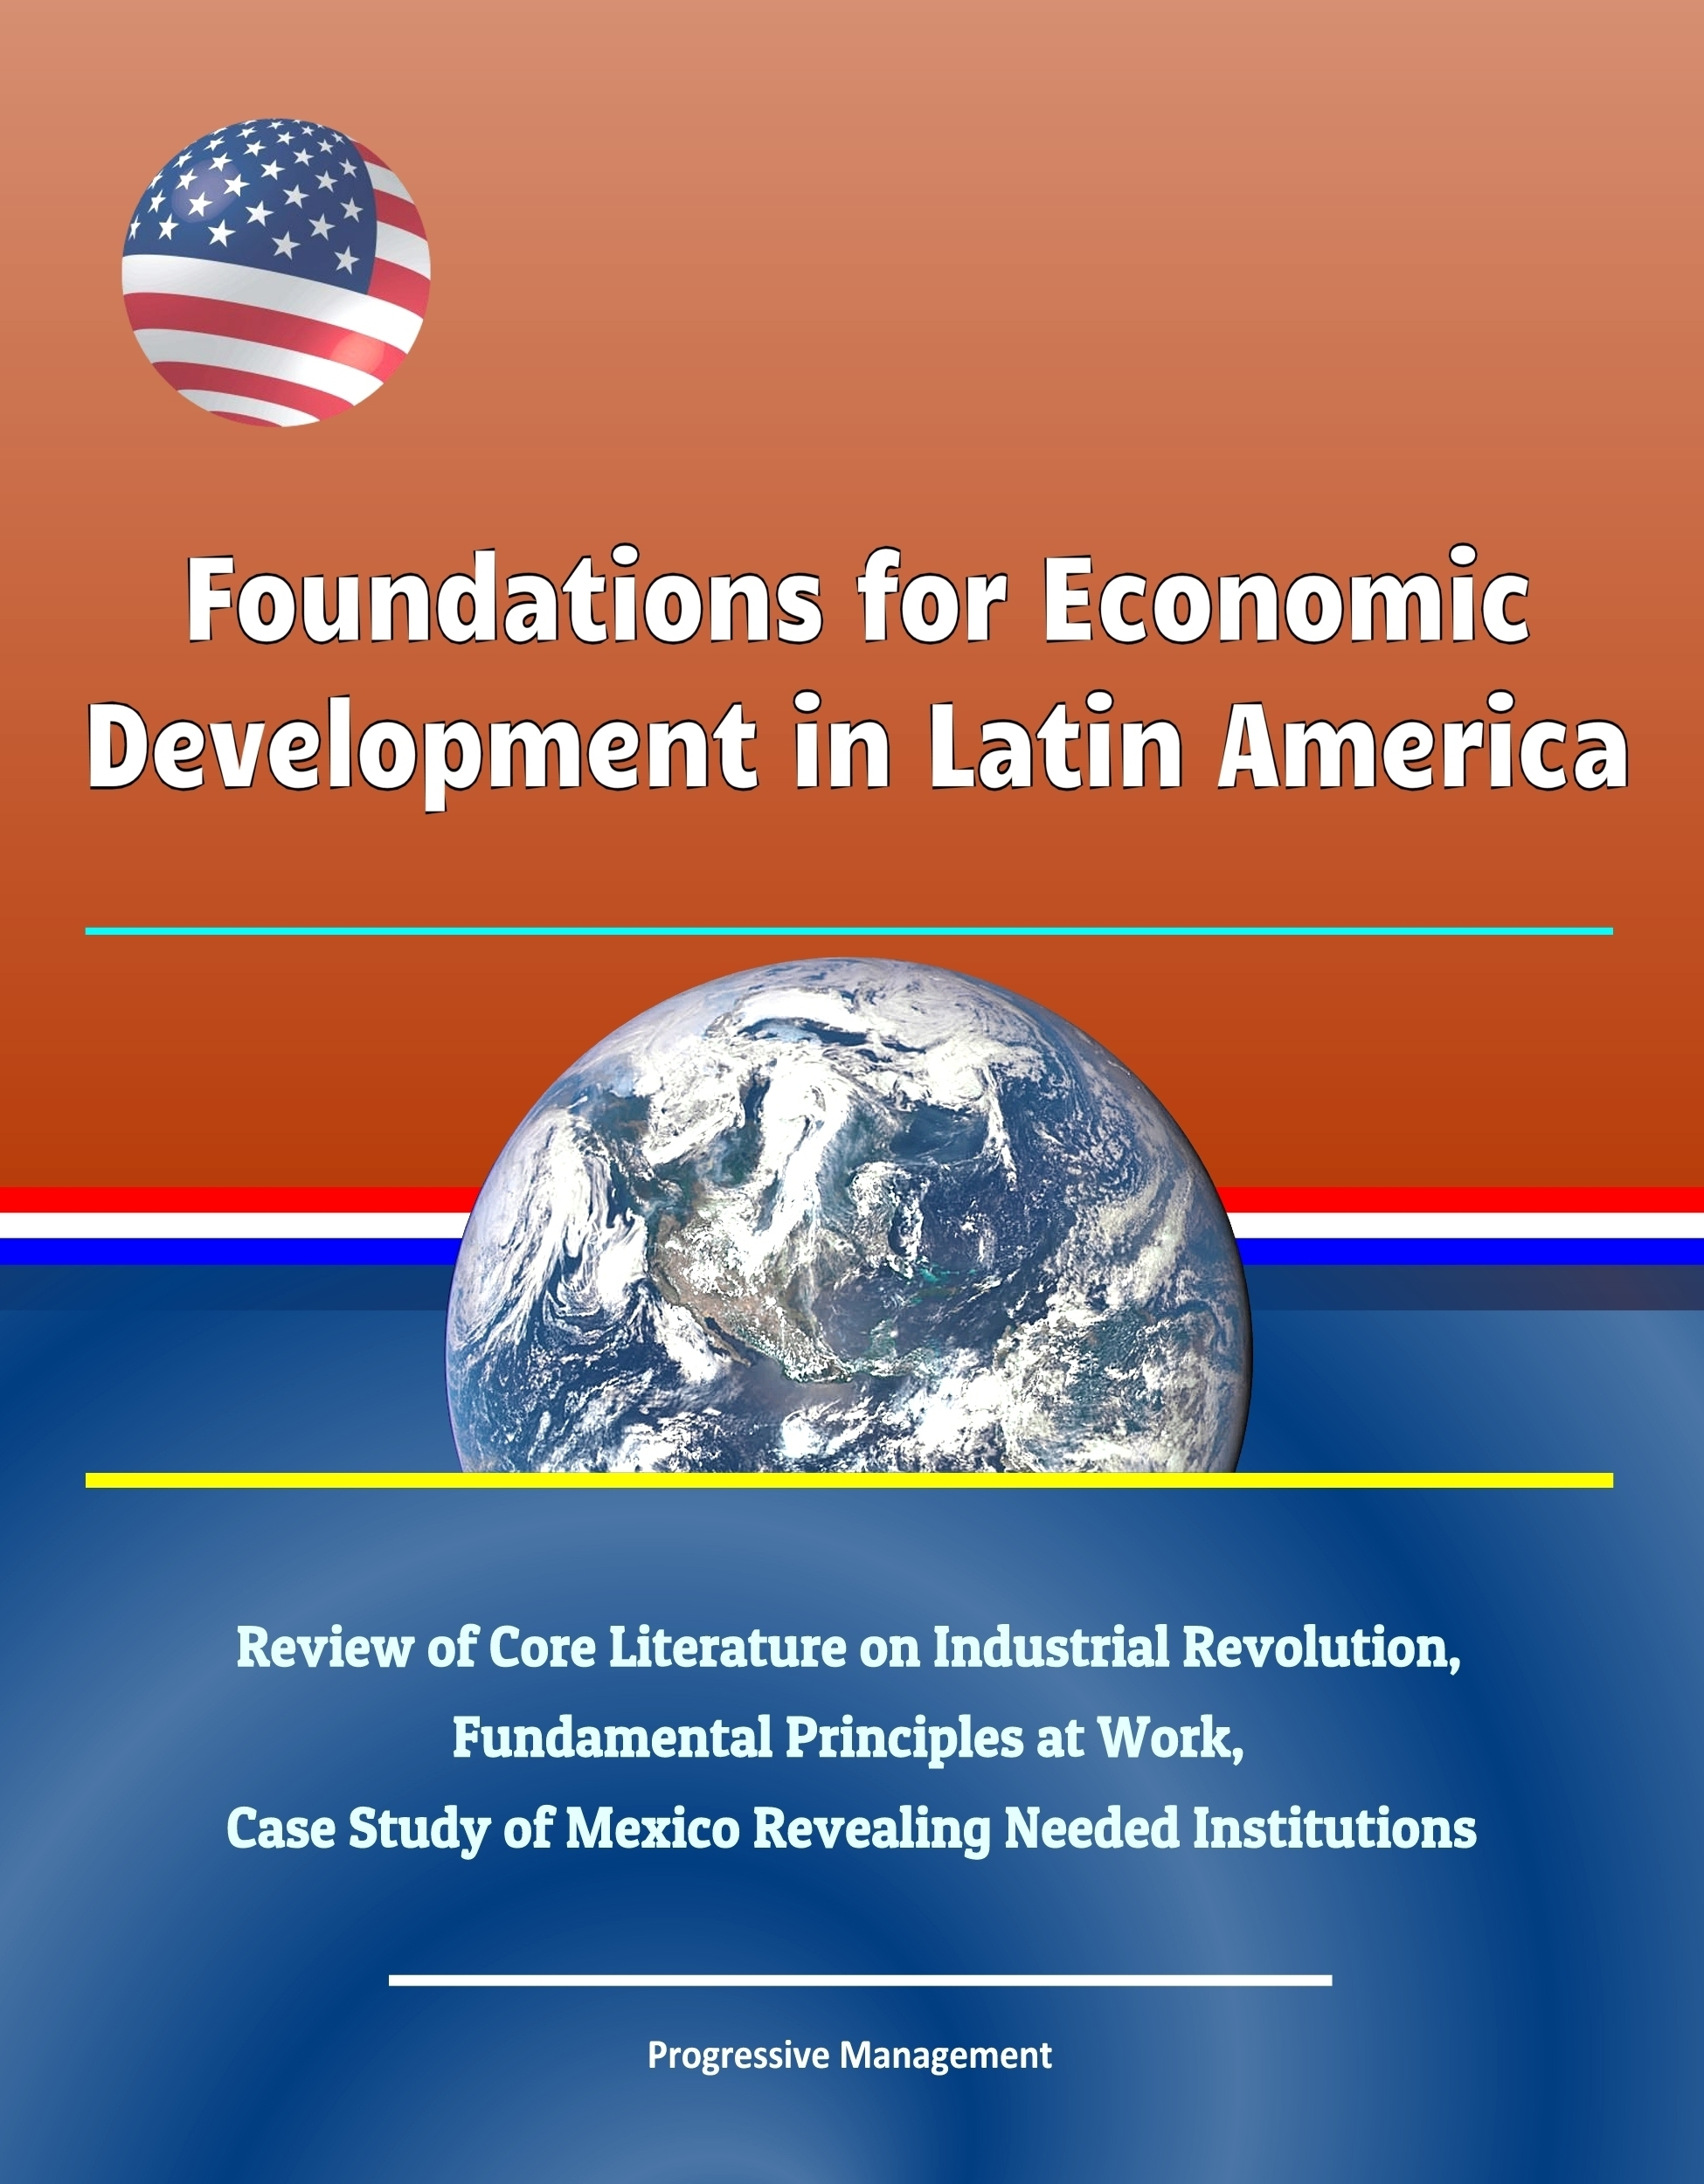 Foundations for Economic Development in Latin America: Review of Core Literature on Industrial Revolution, Fundamental Principles at Work, Case Study of Mexico Revealing Needed Institutions